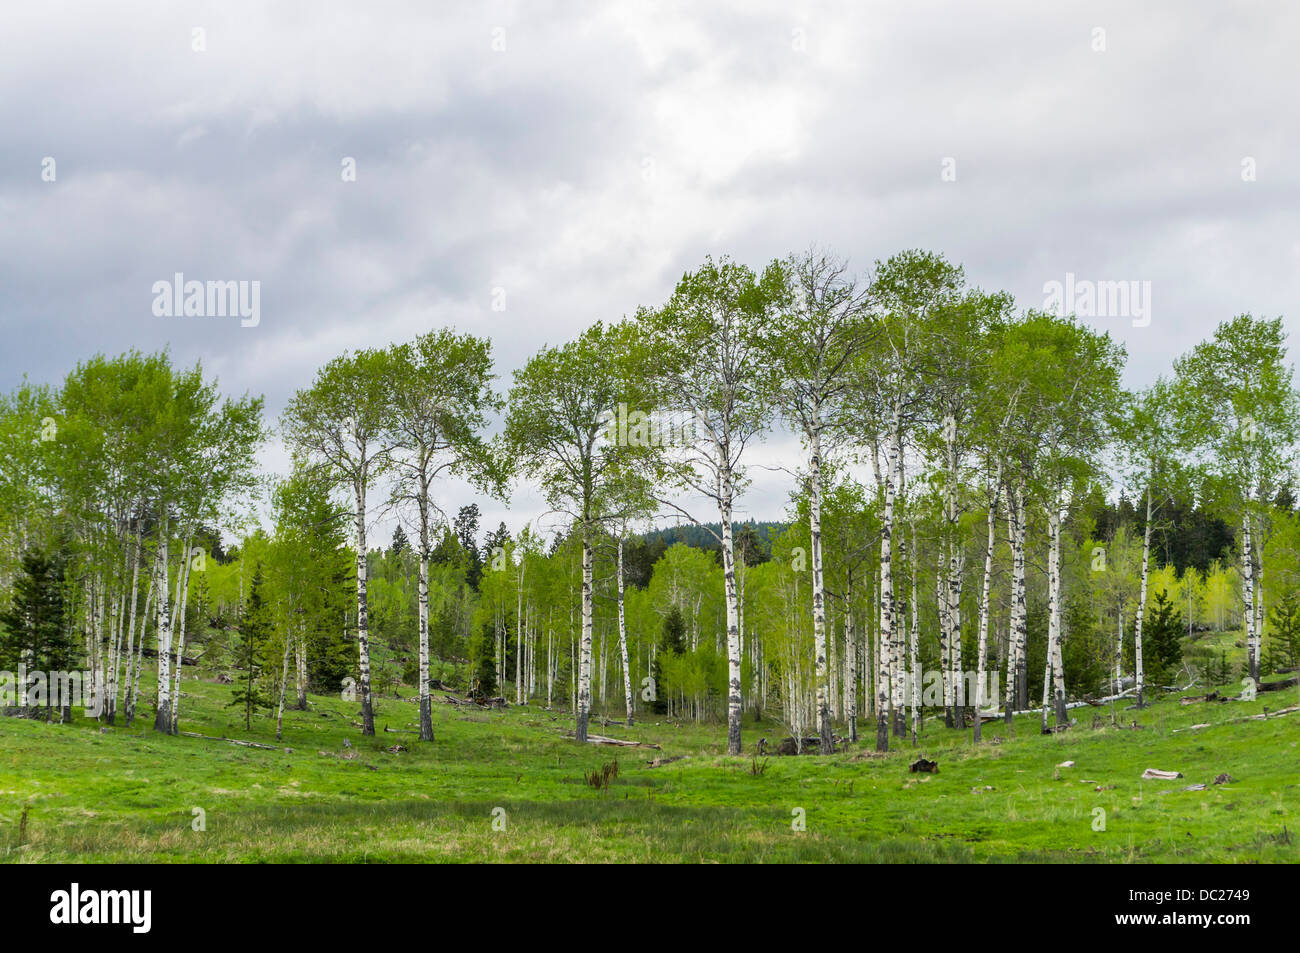 Grove of aspen trees in springtime, Kane Valley, British Colombia, Canada. - Stock Image